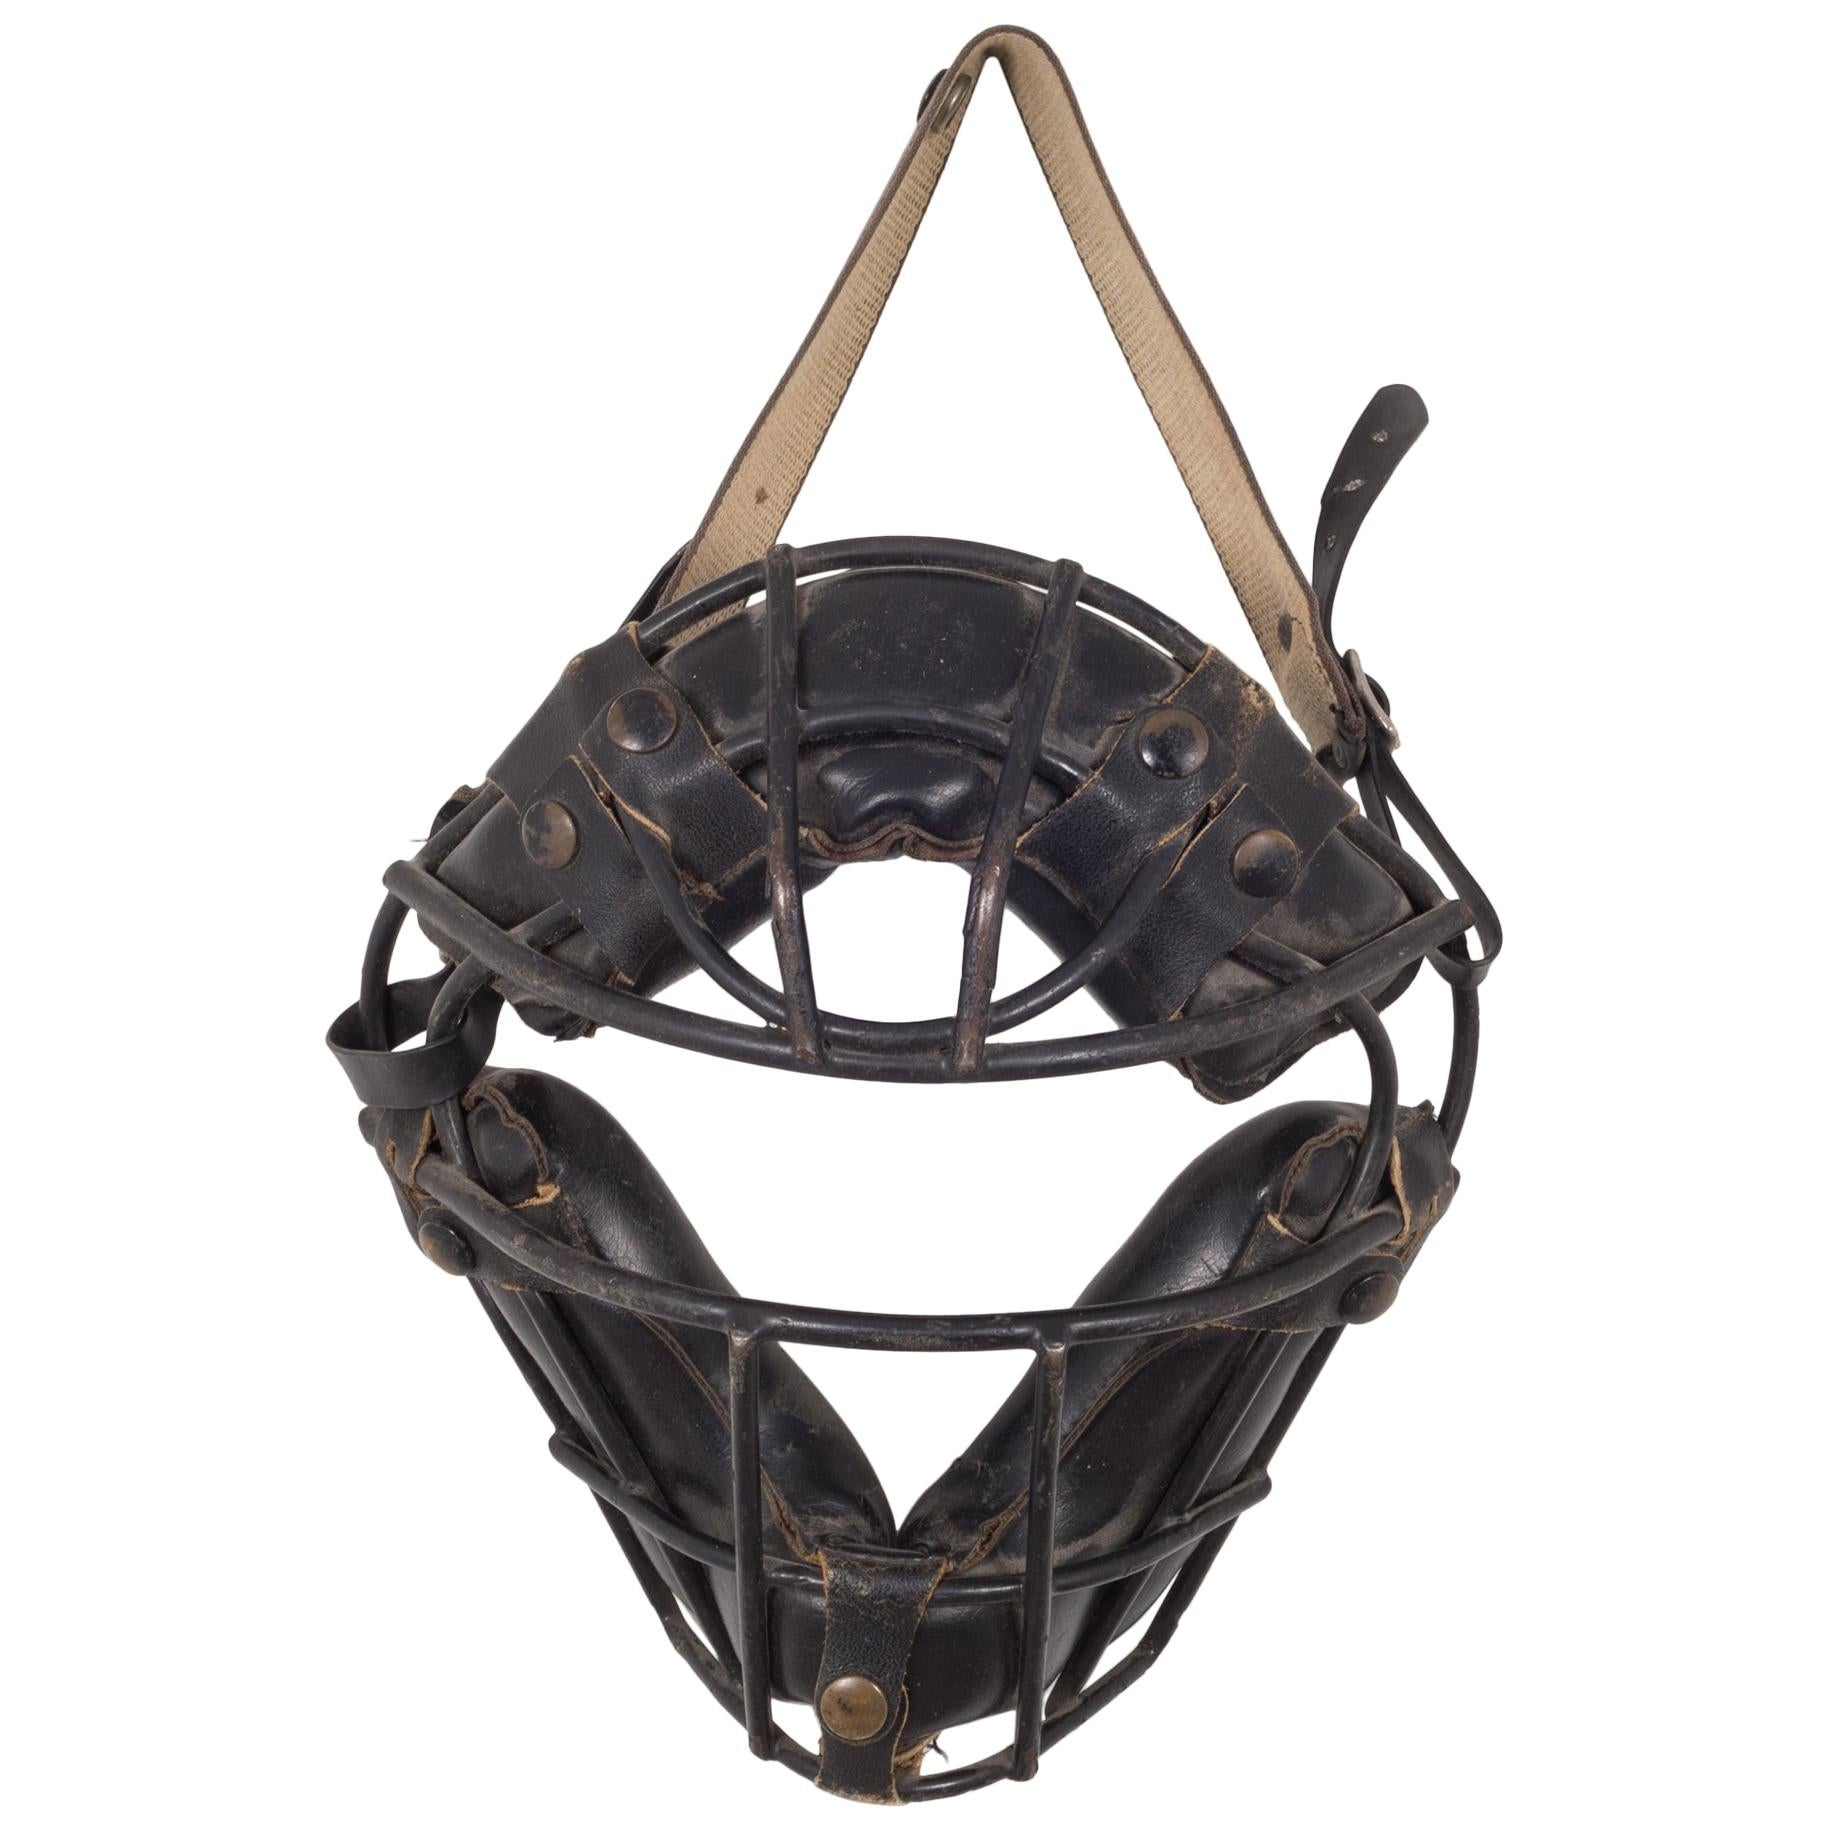 Vintage Steel and Leather Catcher's Mask with Brass Snaps, c.1940